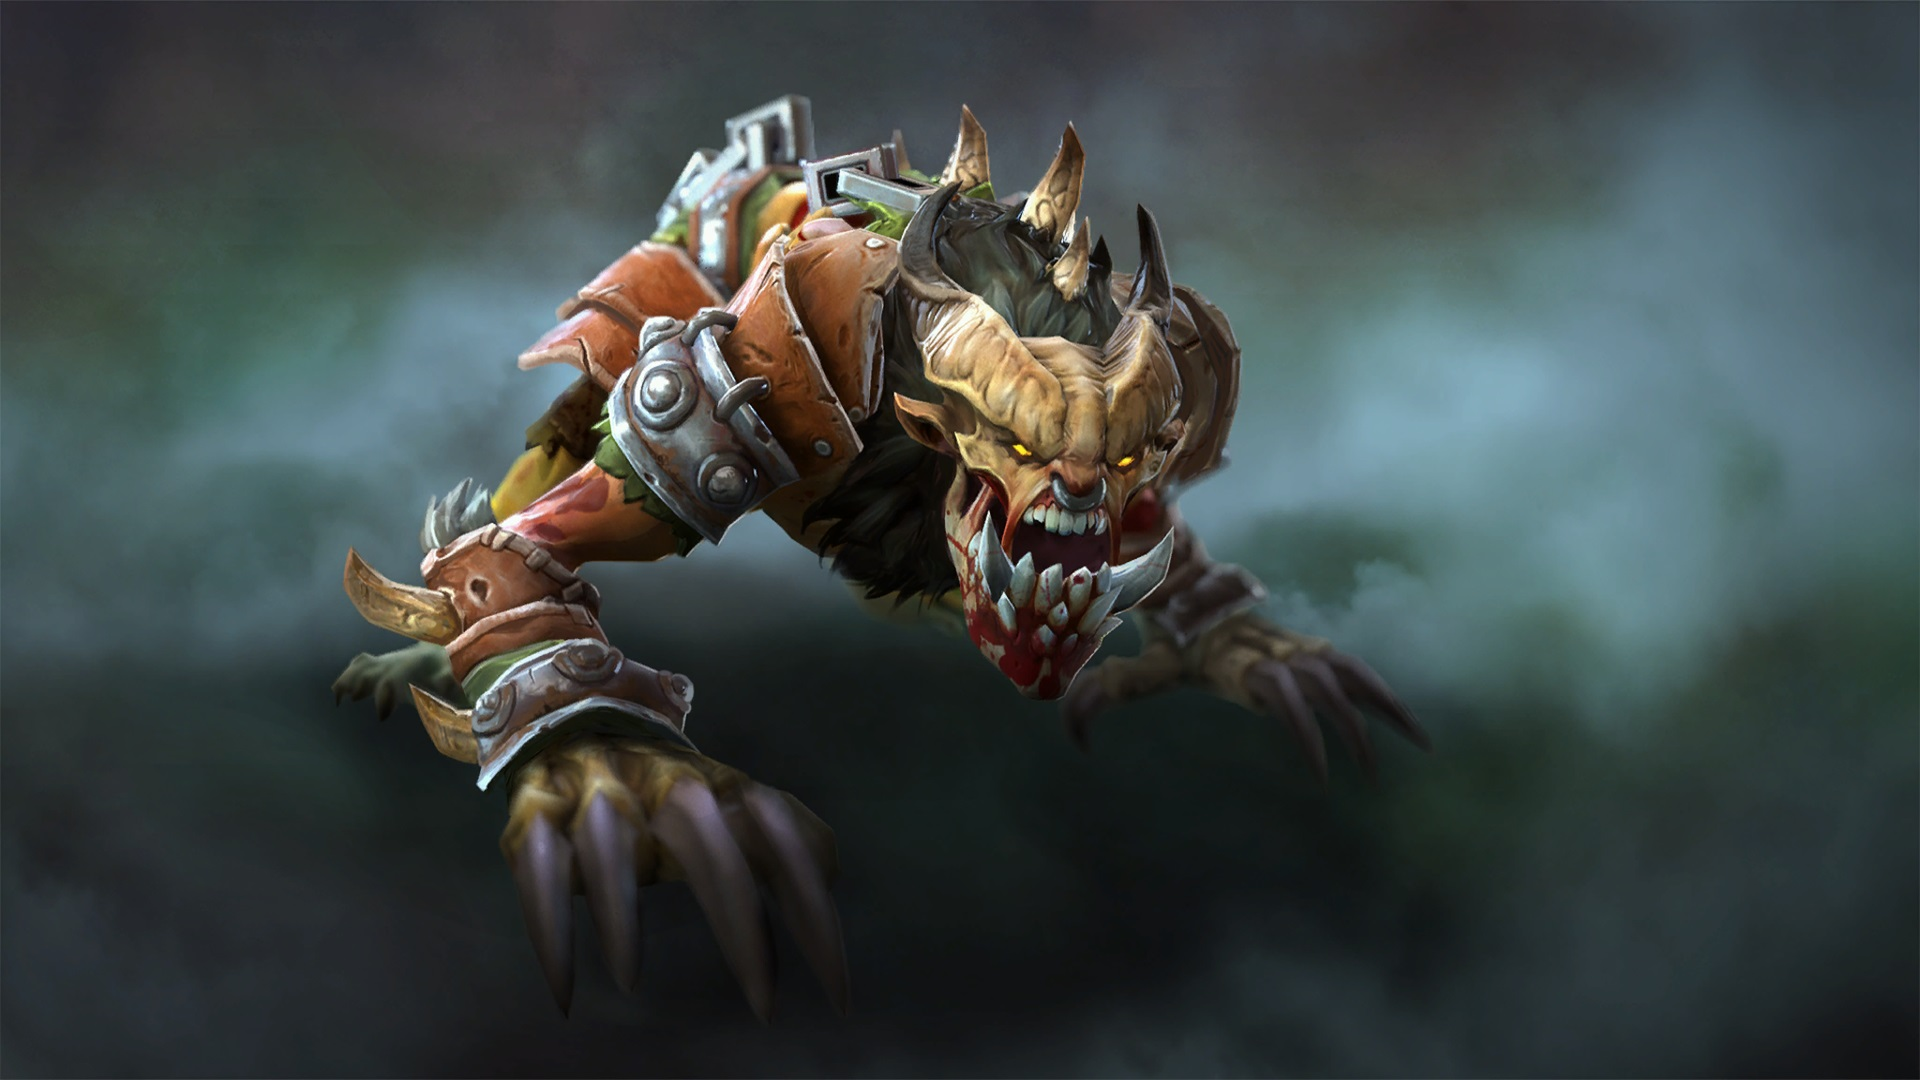 Lifestealer Wallpapers Dota 2 desktop backgrounds high resolution